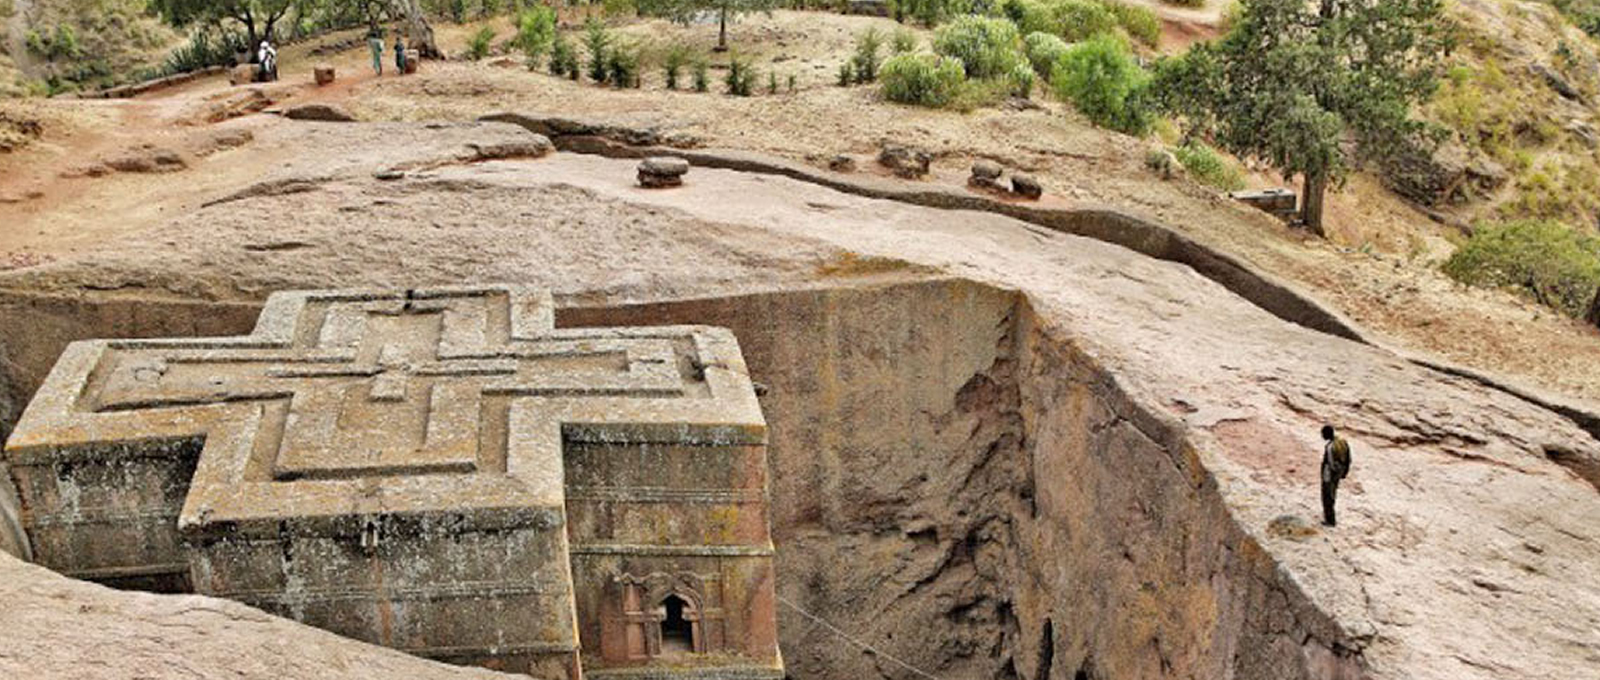 The Rock-Hewn church of Lalibela